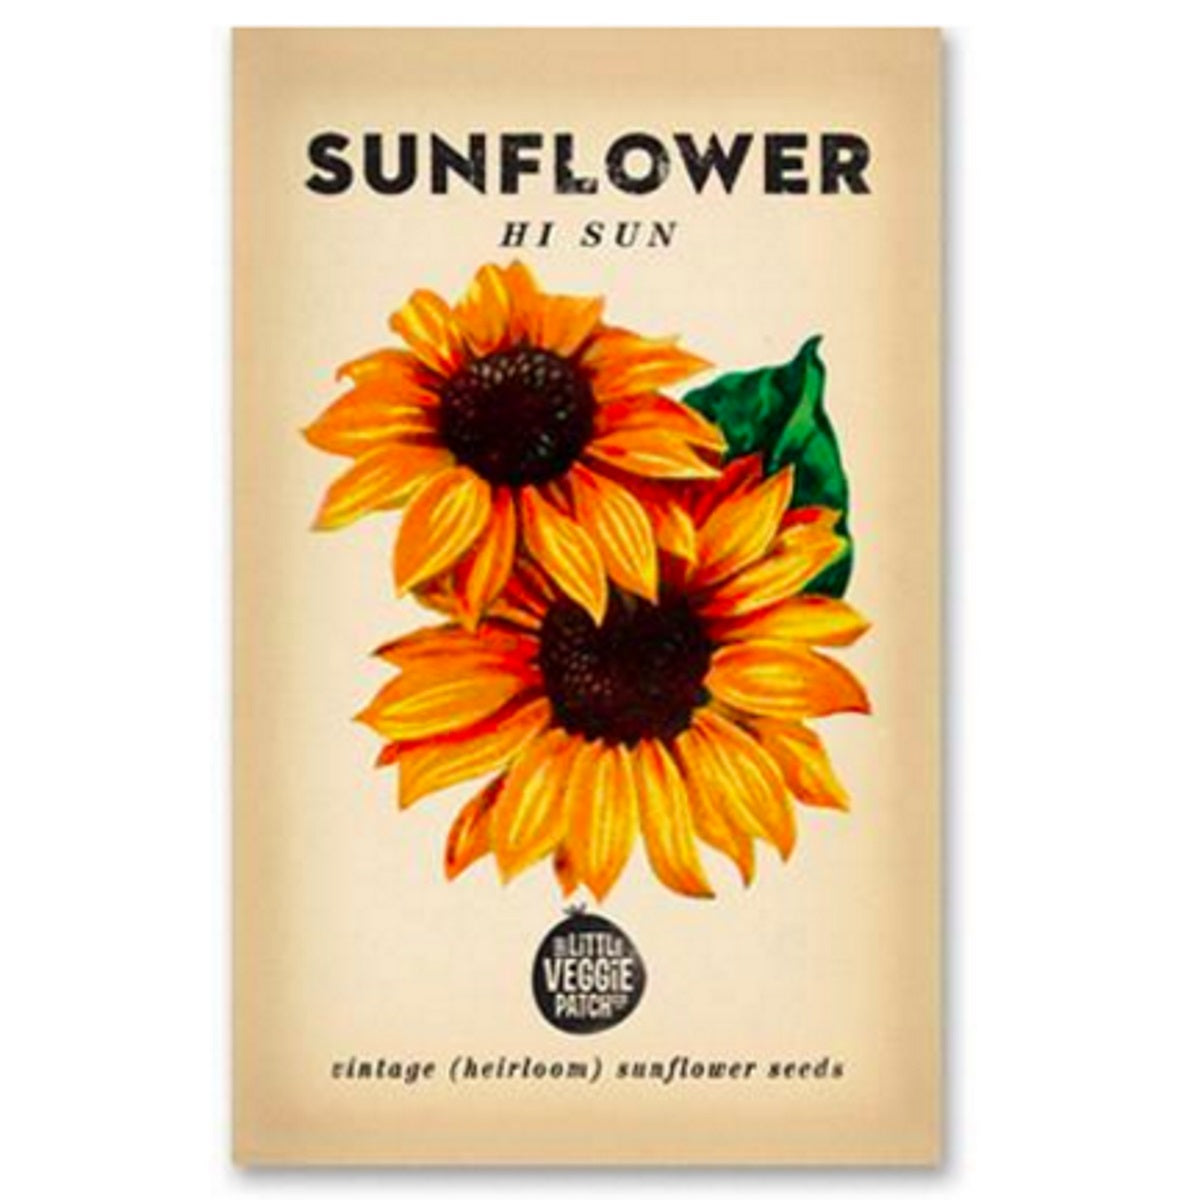 Sunflower (Hi Sun) Heirloom Seeds - Seeds - Throw Some Seeds - Australian gardening gifts and eco products online!